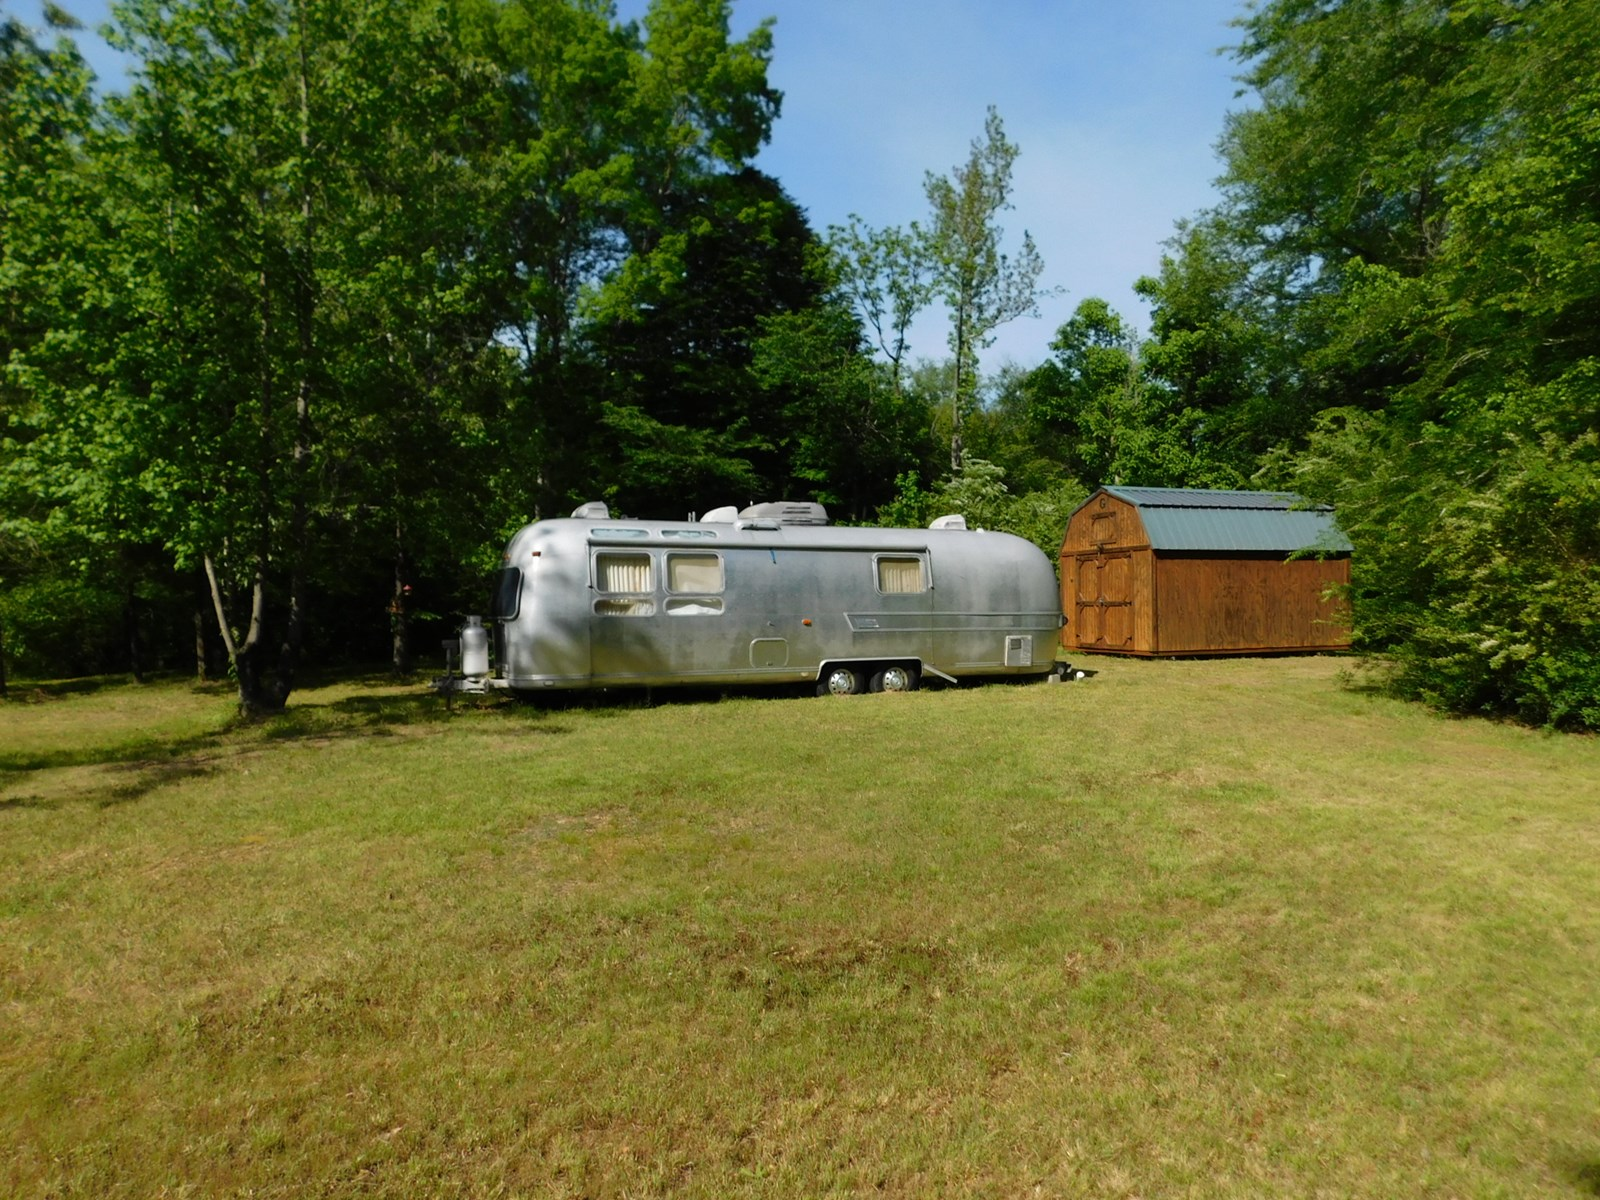 LAND FOR SALE IN TN NO RESTRICTIONS CREEK CAMPER & UTILITIES